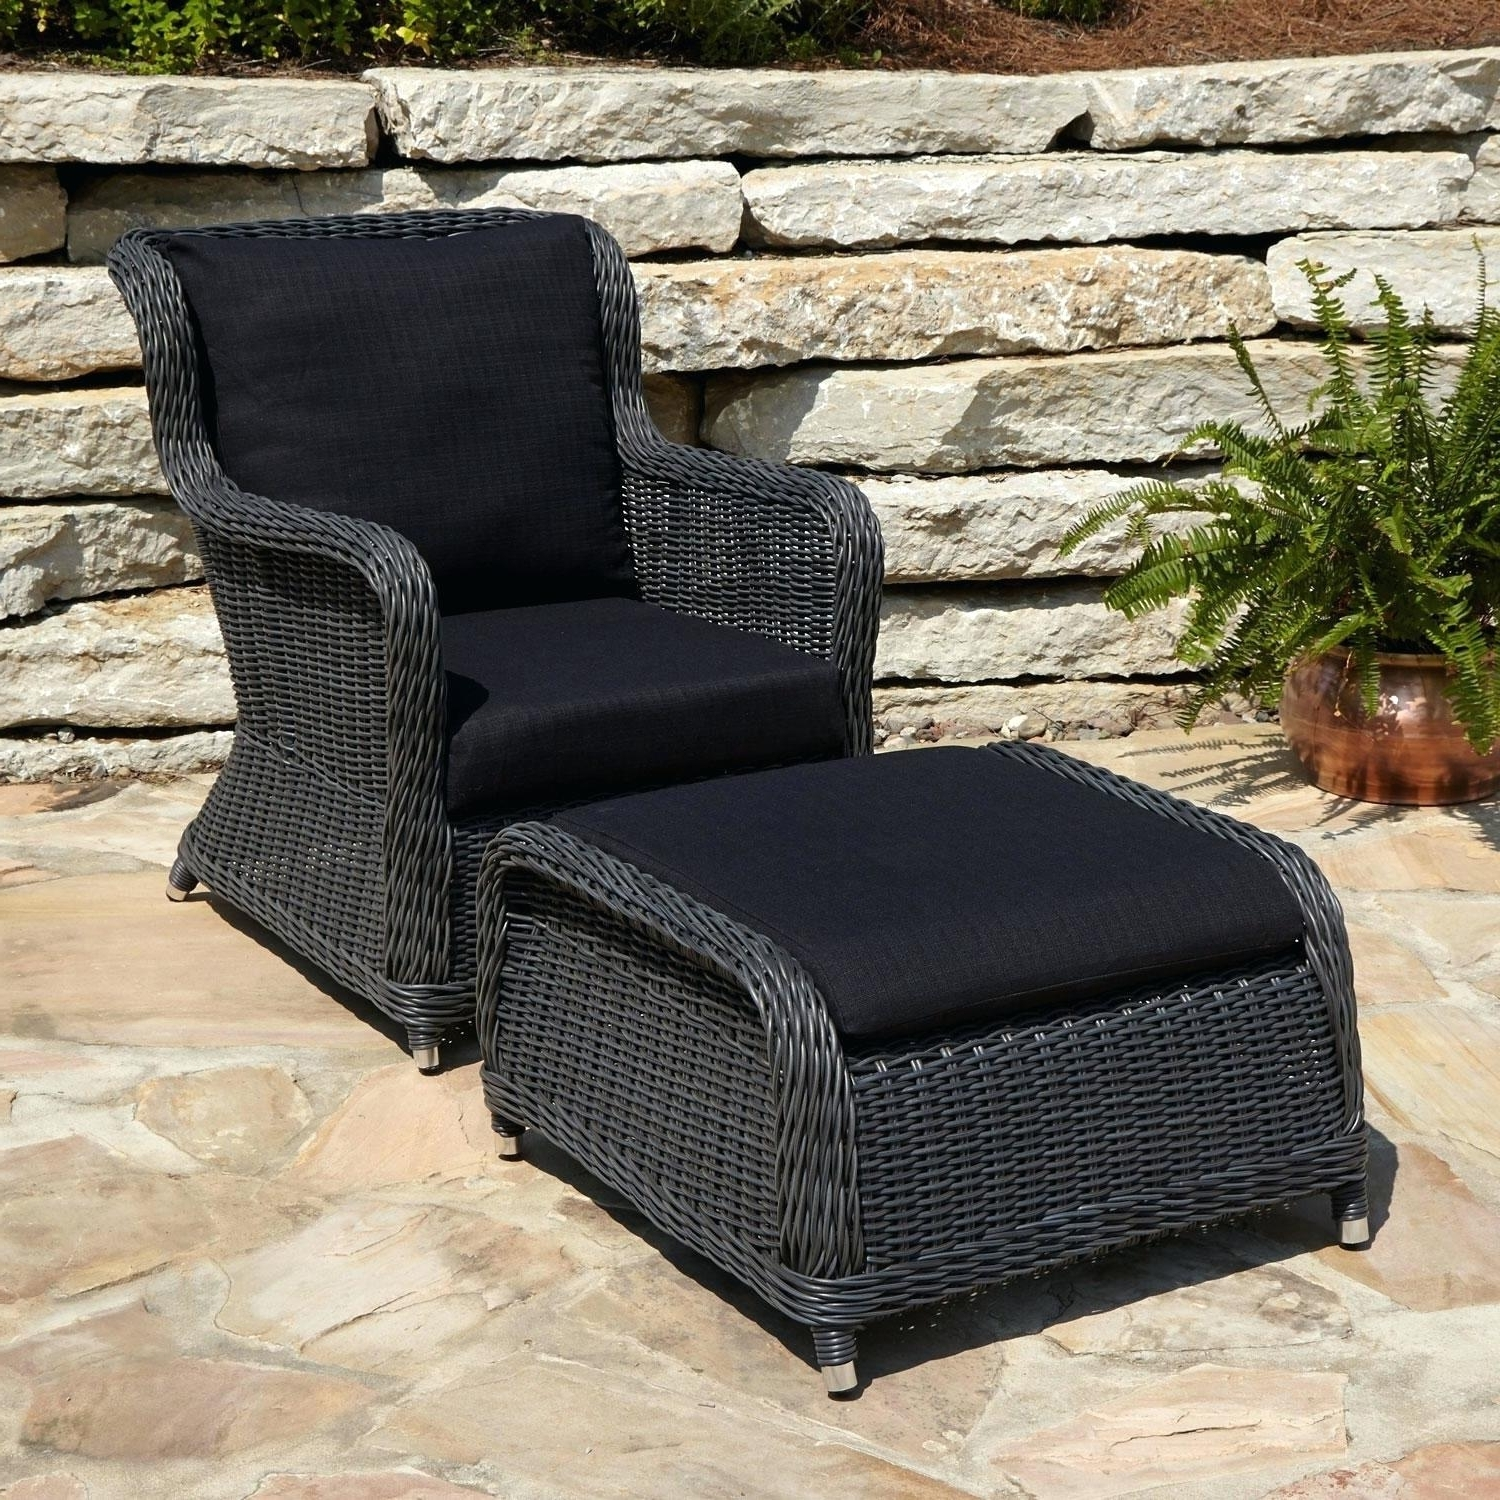 Resin Patio Furniture Sets Chair Pier One Wicker Conversation Blue In Well Known Pier One Patio Conversation Sets (View 15 of 15)